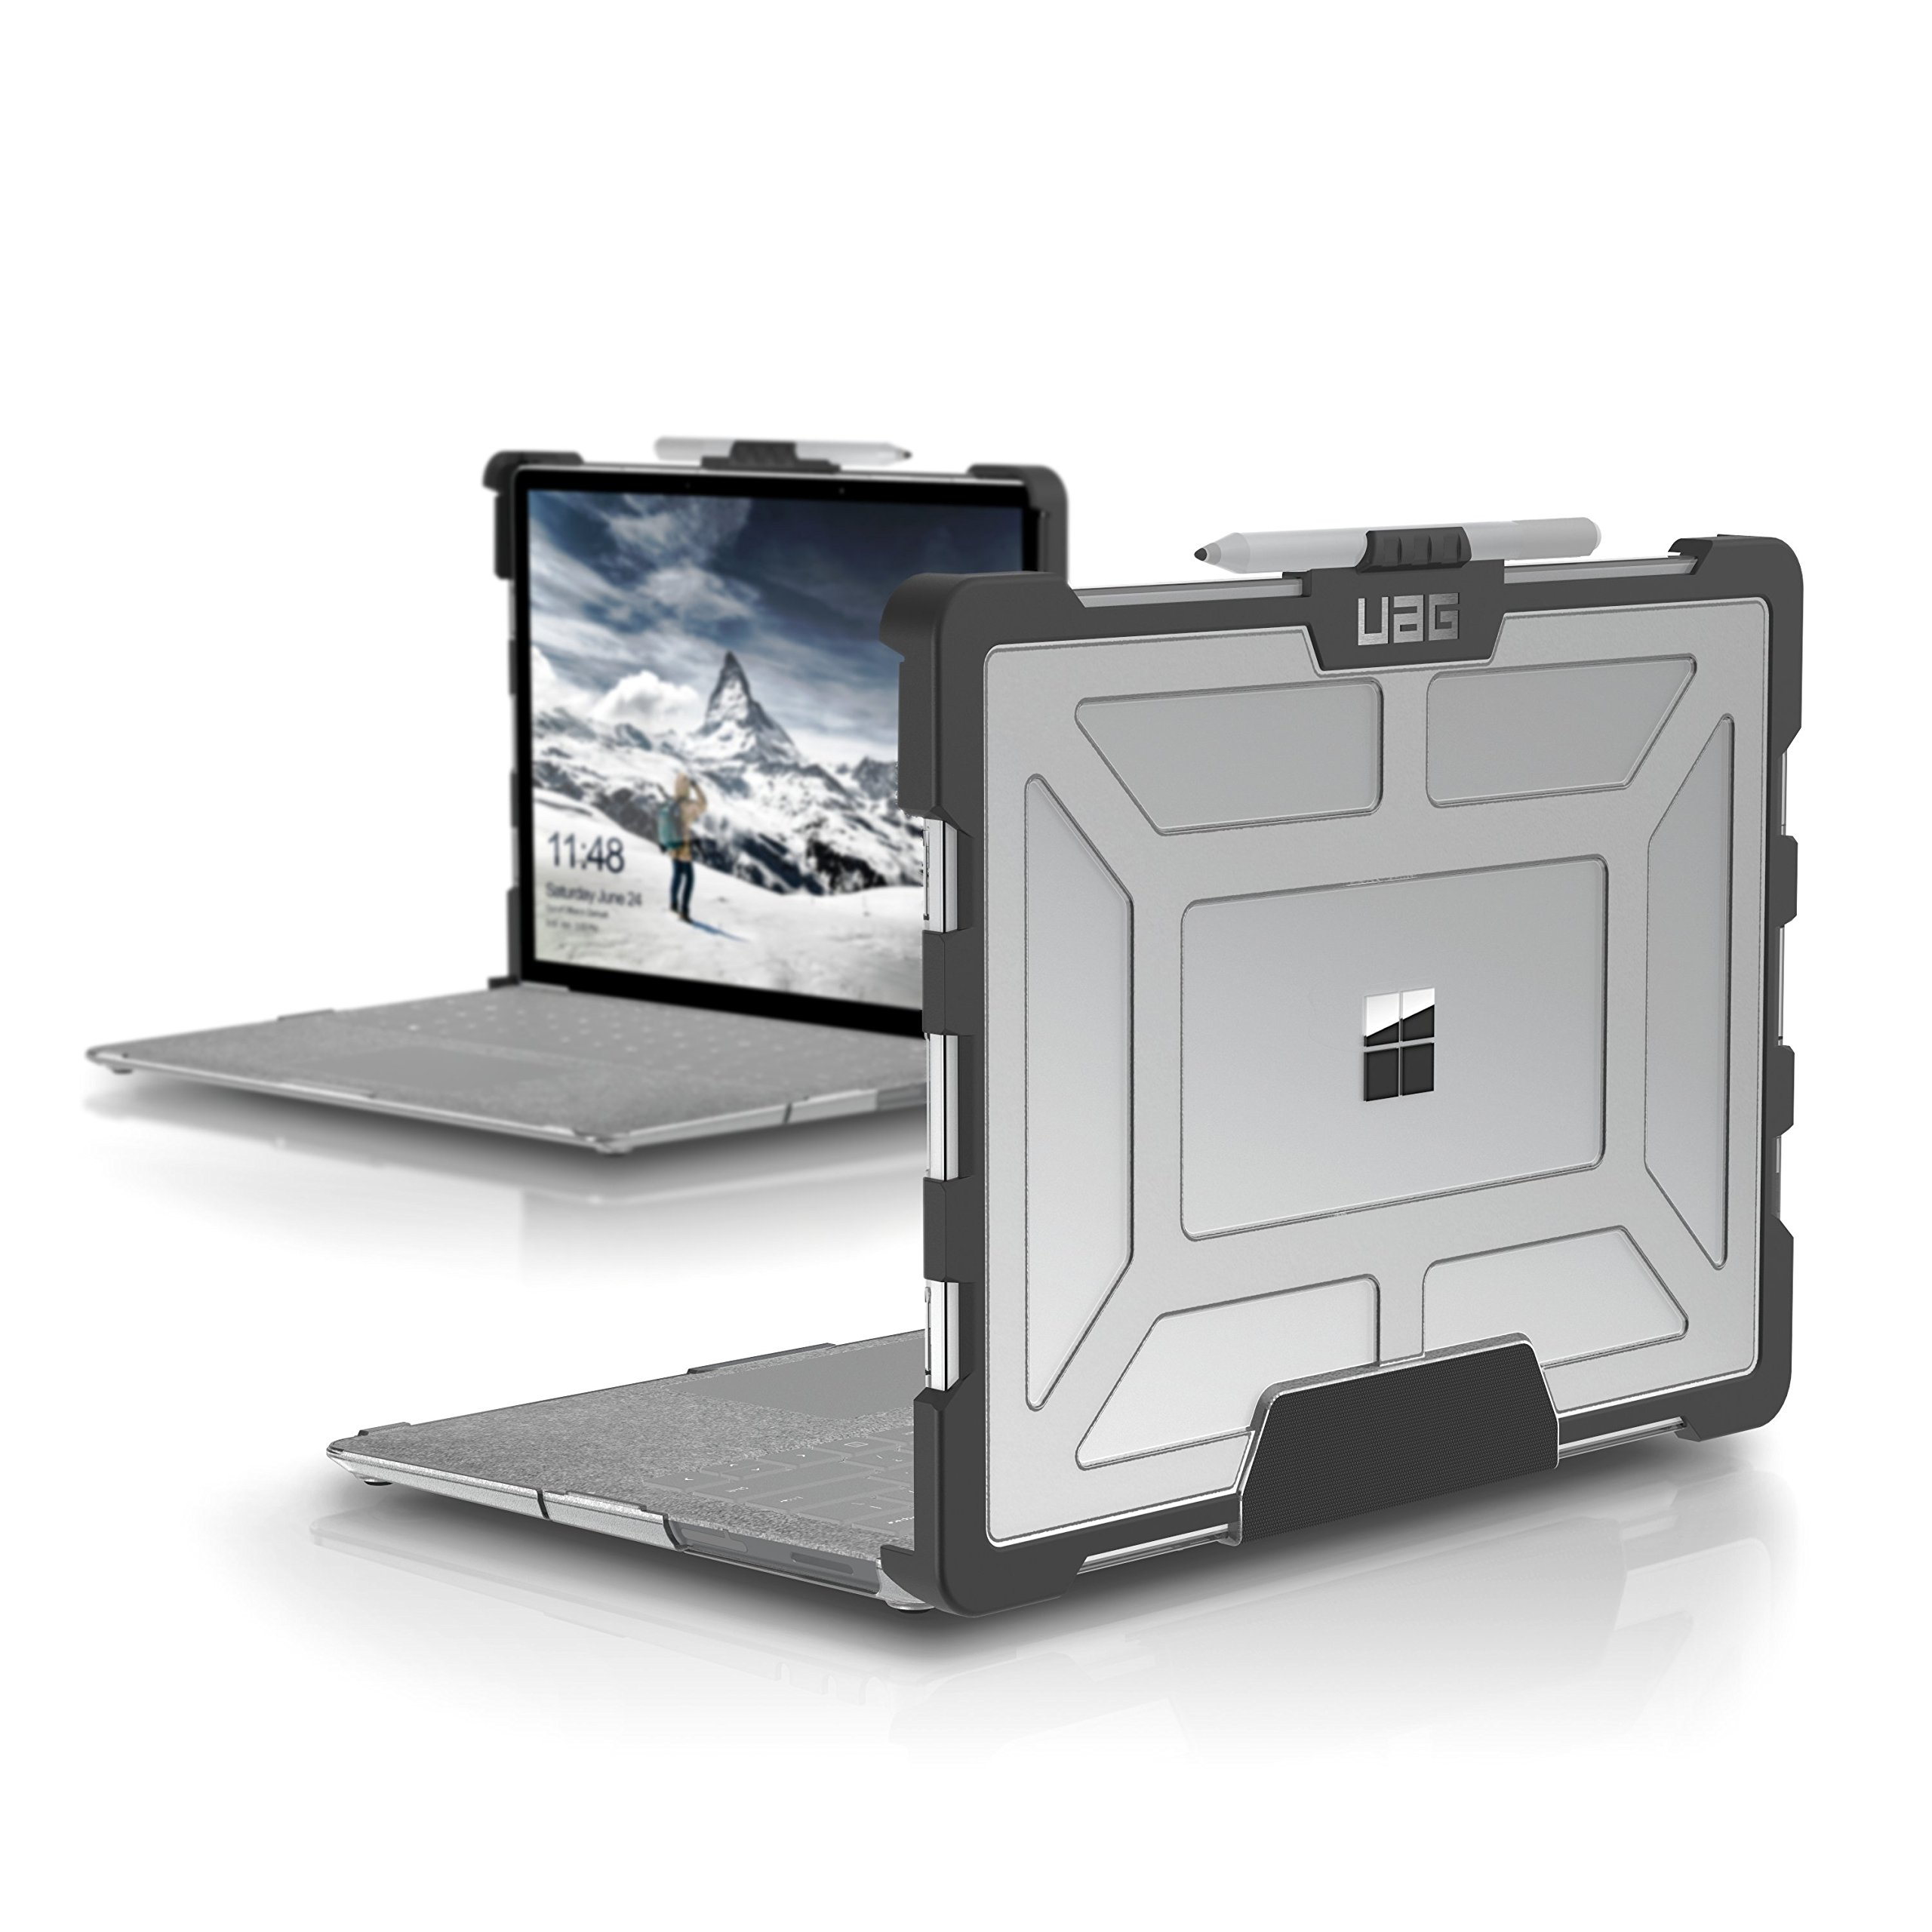 UAG Microsoft Surface Laptop 2/Surface Laptop Feather-Light Rugged [Ice] Military Drop Tested Laptop Case by URBAN ARMOR GEAR (Image #1)